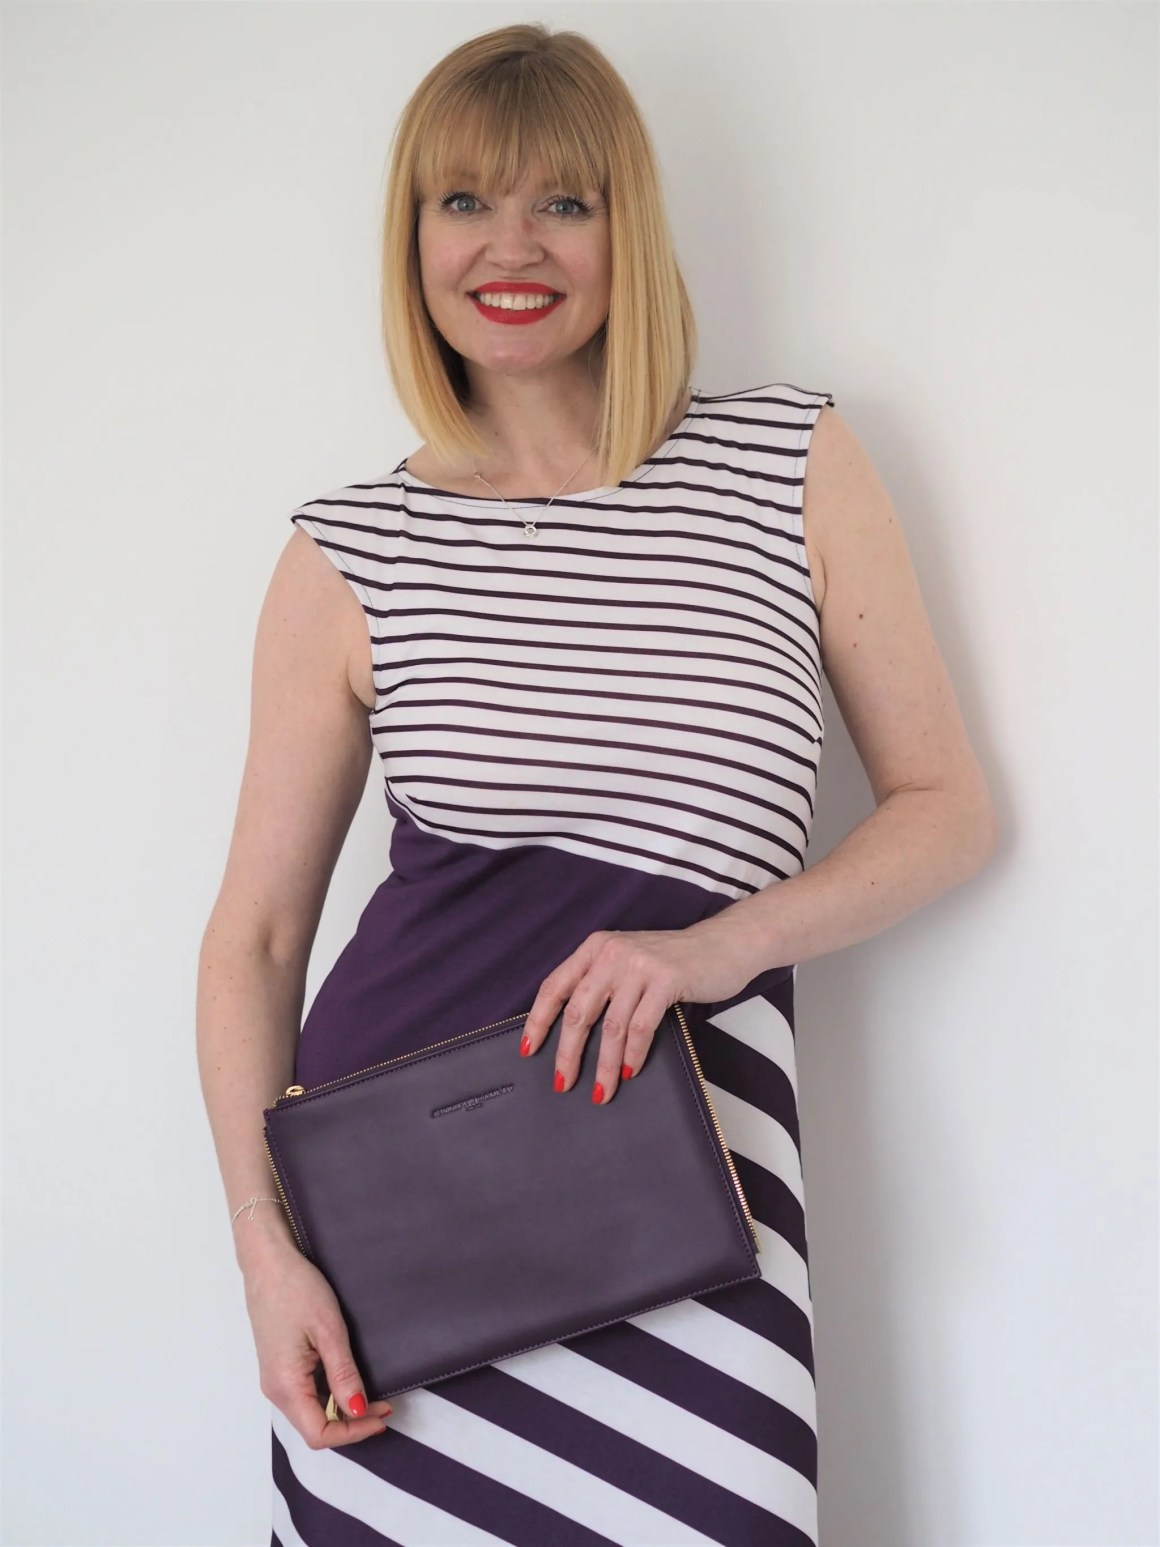 what-lizzy-loves-jennifer-hamley-model-kt-laptop-bag-review-zip-off-clutch